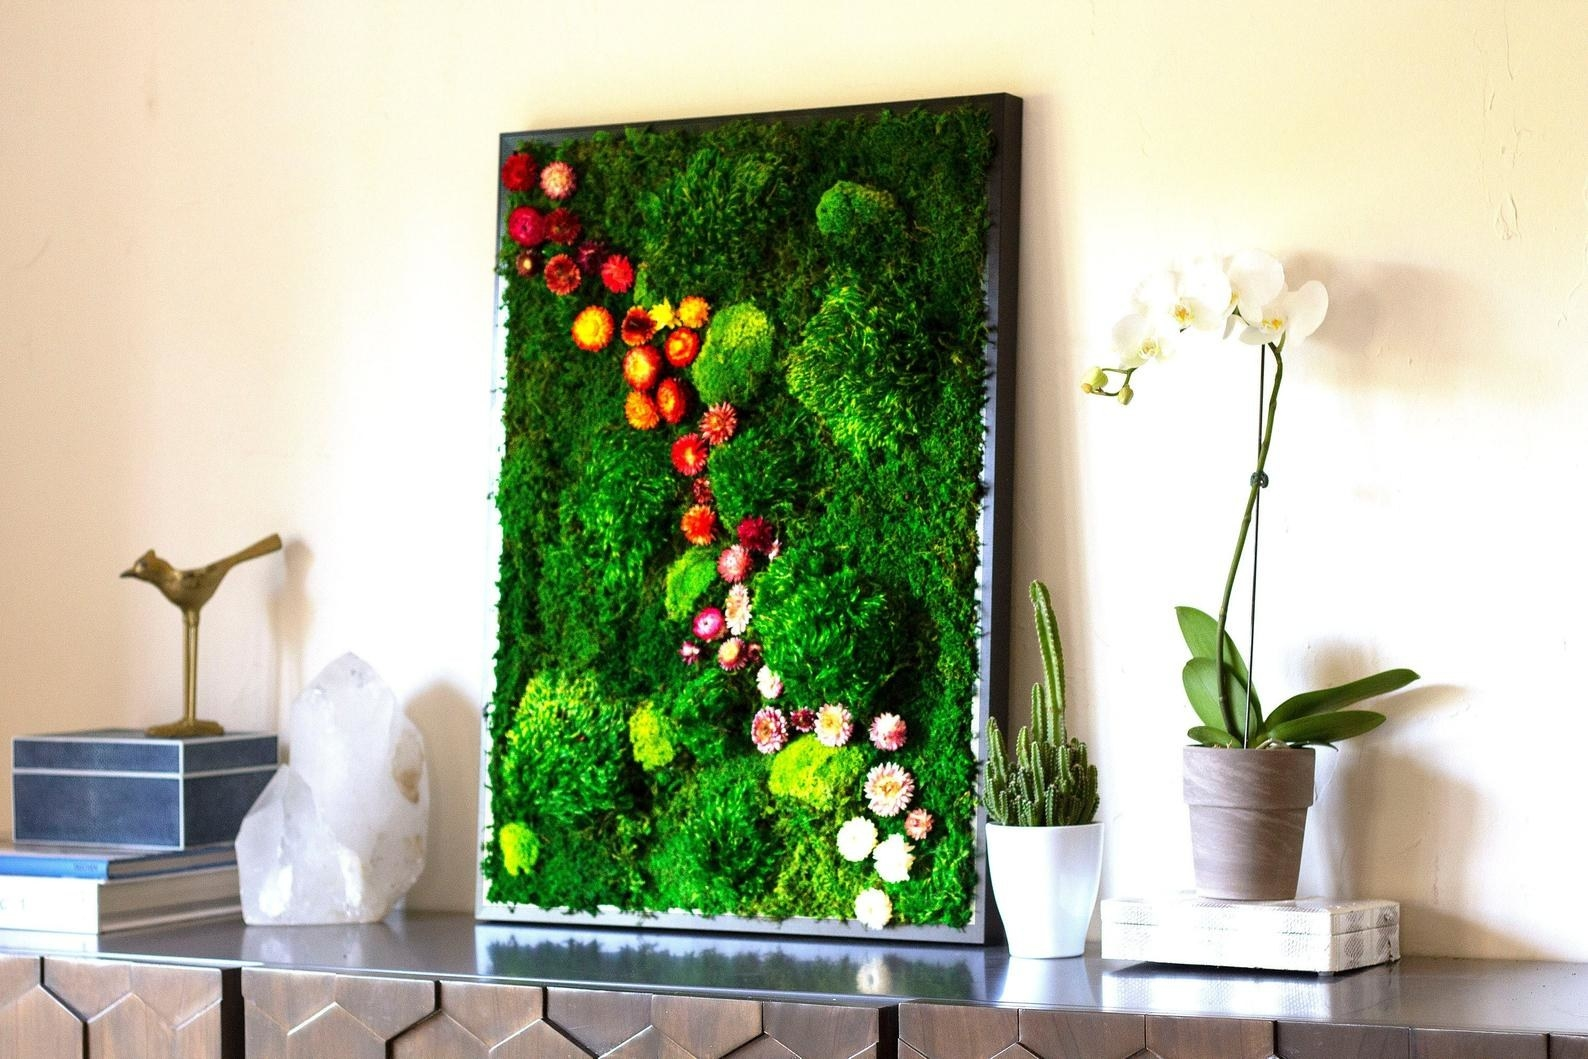 the bright green moss and floral display